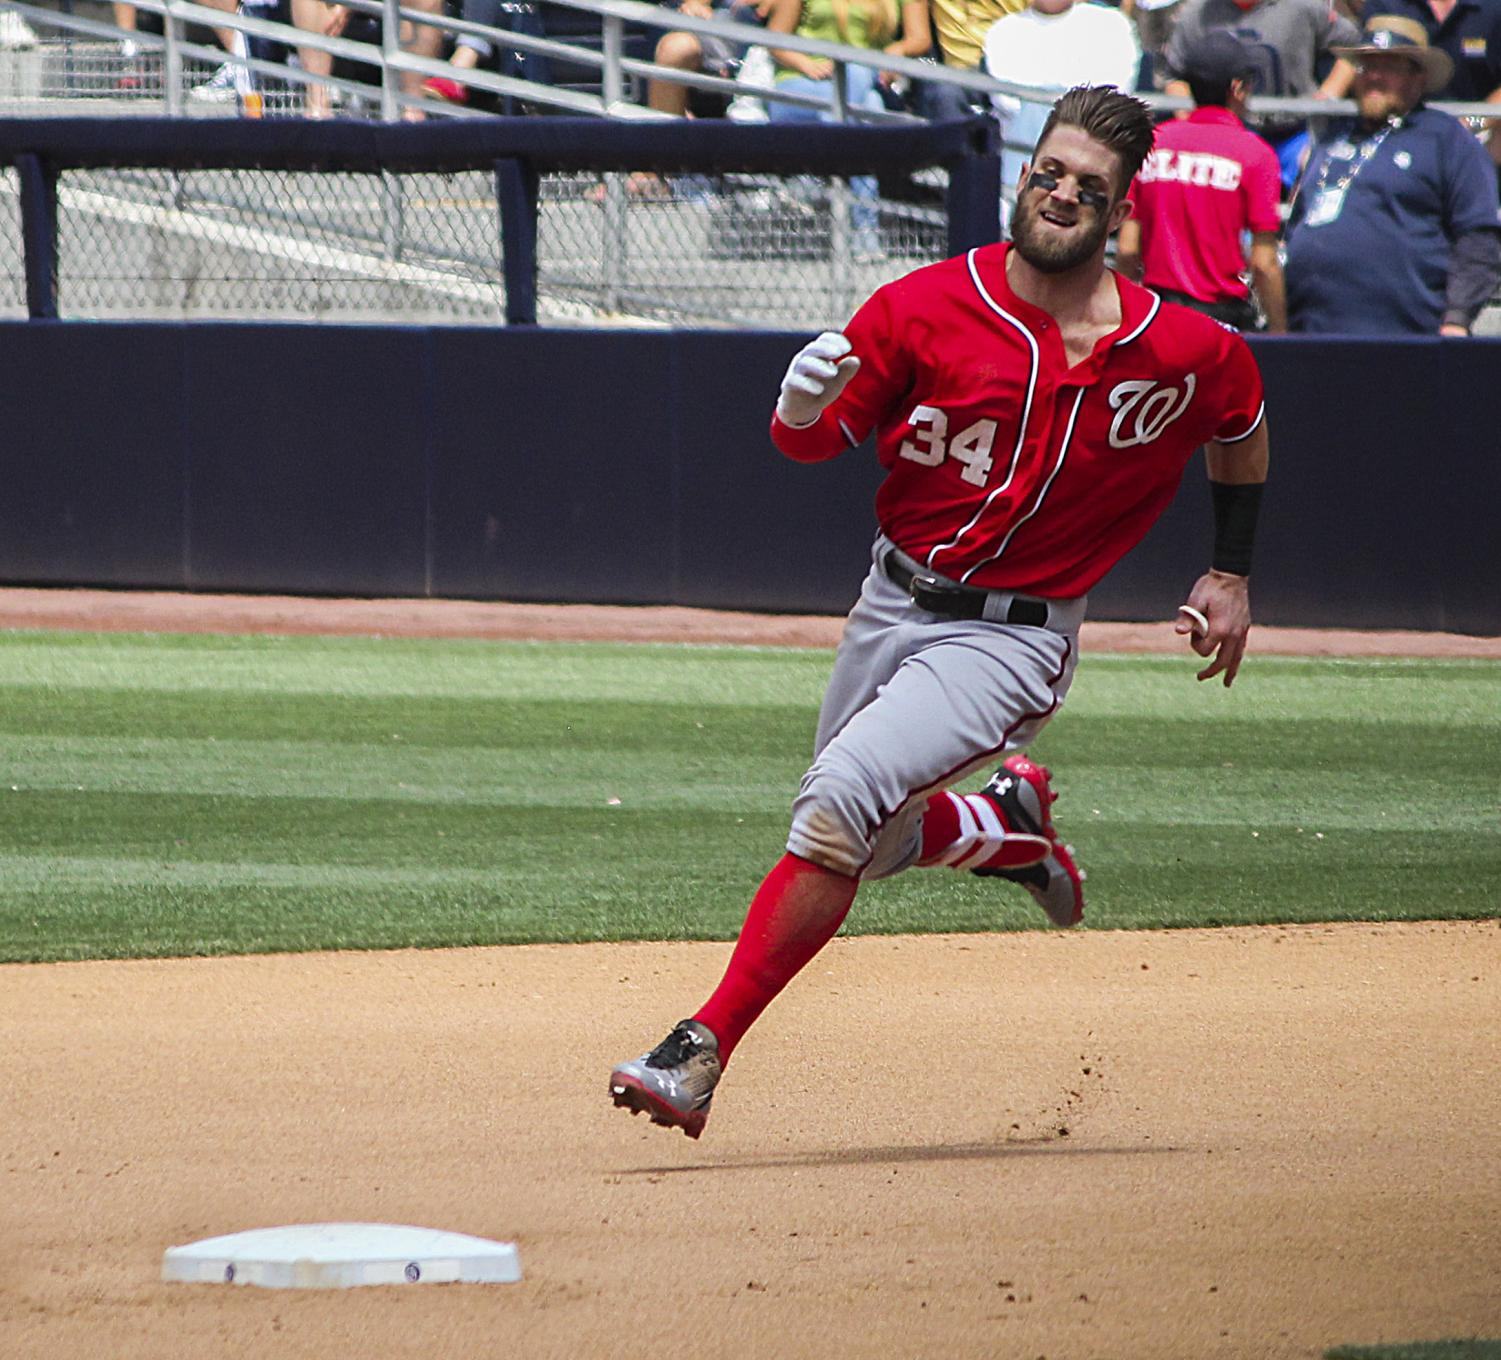 Nationals outfield star Bryce Harper sprints to a base. Harper was a free-agent this off-season, and there have been rumors that he will have offers from multiple teams.